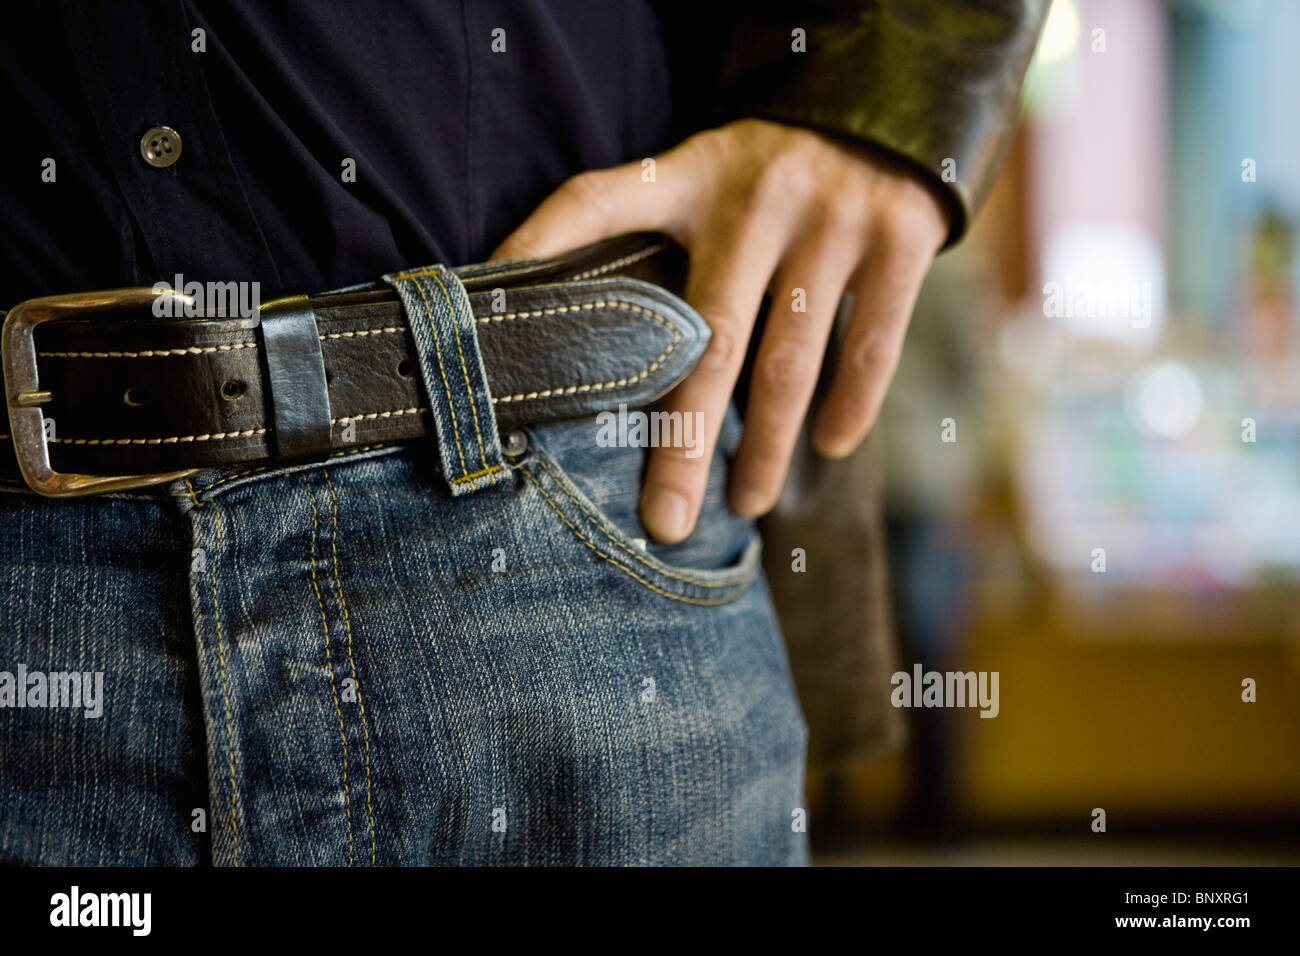 Person wearing jeans with belt, hand on hip, cropped - Stock Image